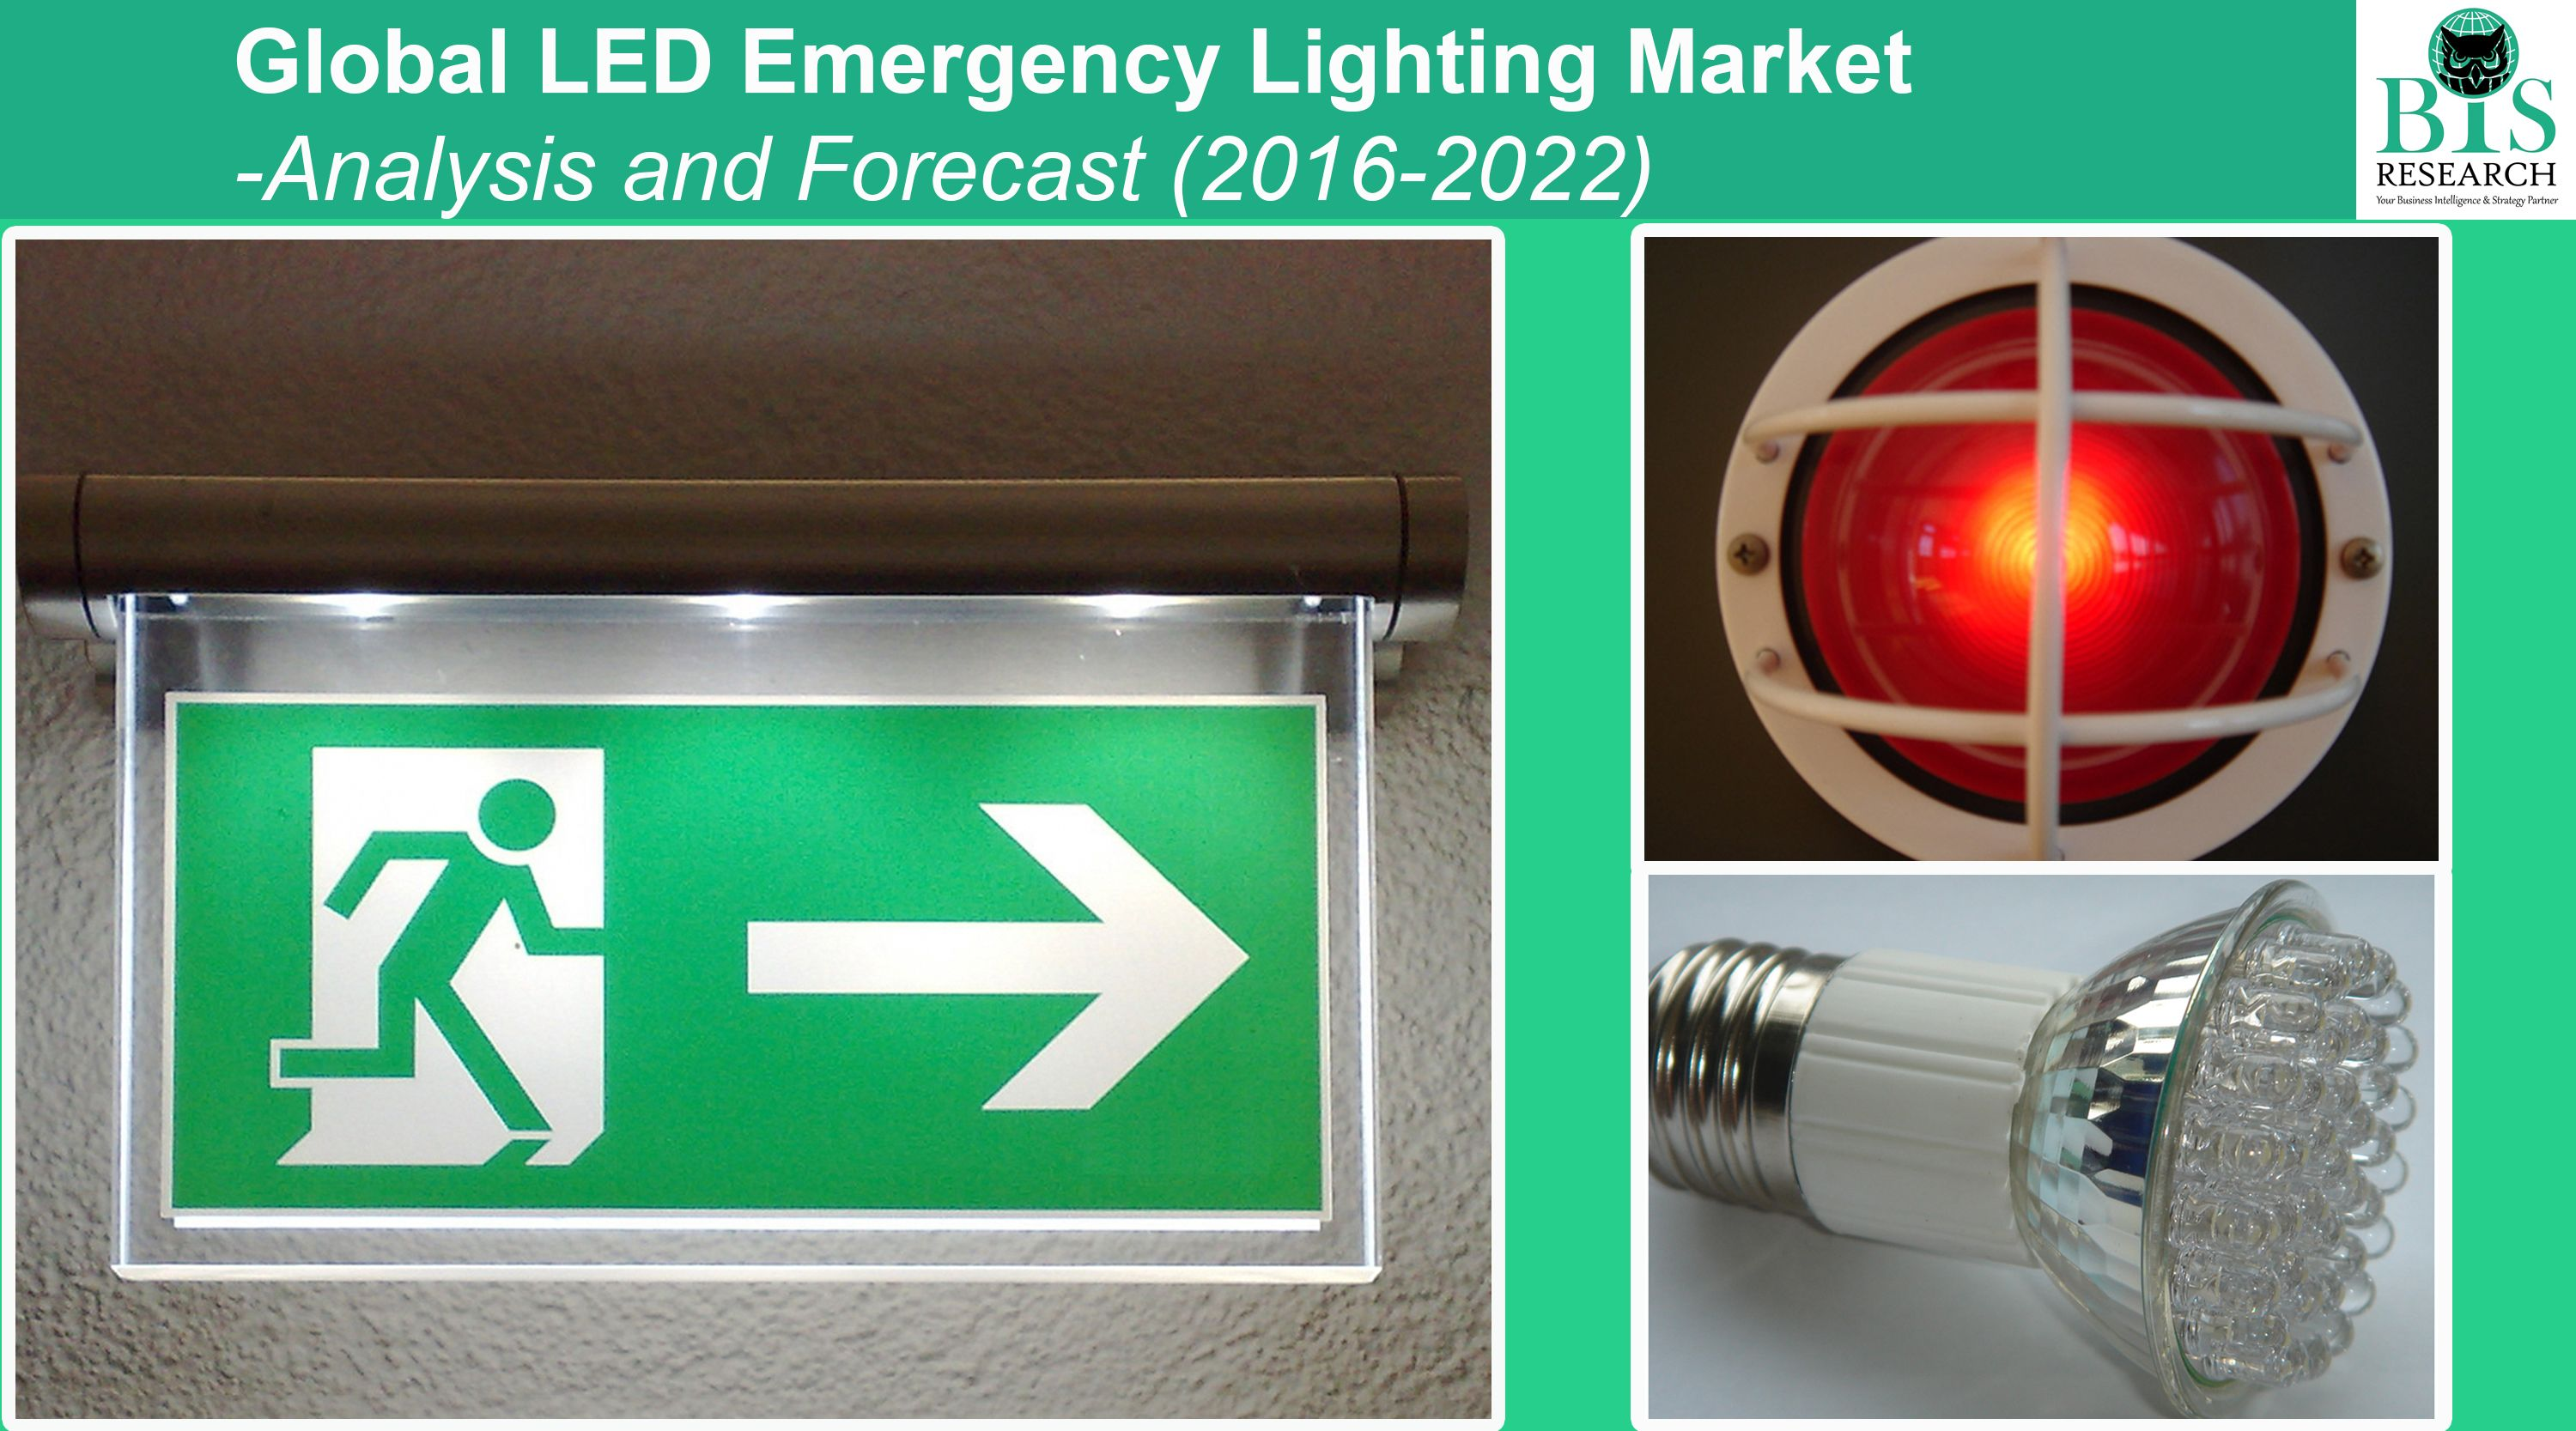 Global LED Emergency Lighting Market Analysis And Forecast 2016 u2013 2022; Focus On Self-Sustained Systems Centrally Supplied Systems L&s Luminaries ... & Global LED Emergency Lighting Market Analysis And Forecast: 2016 ...